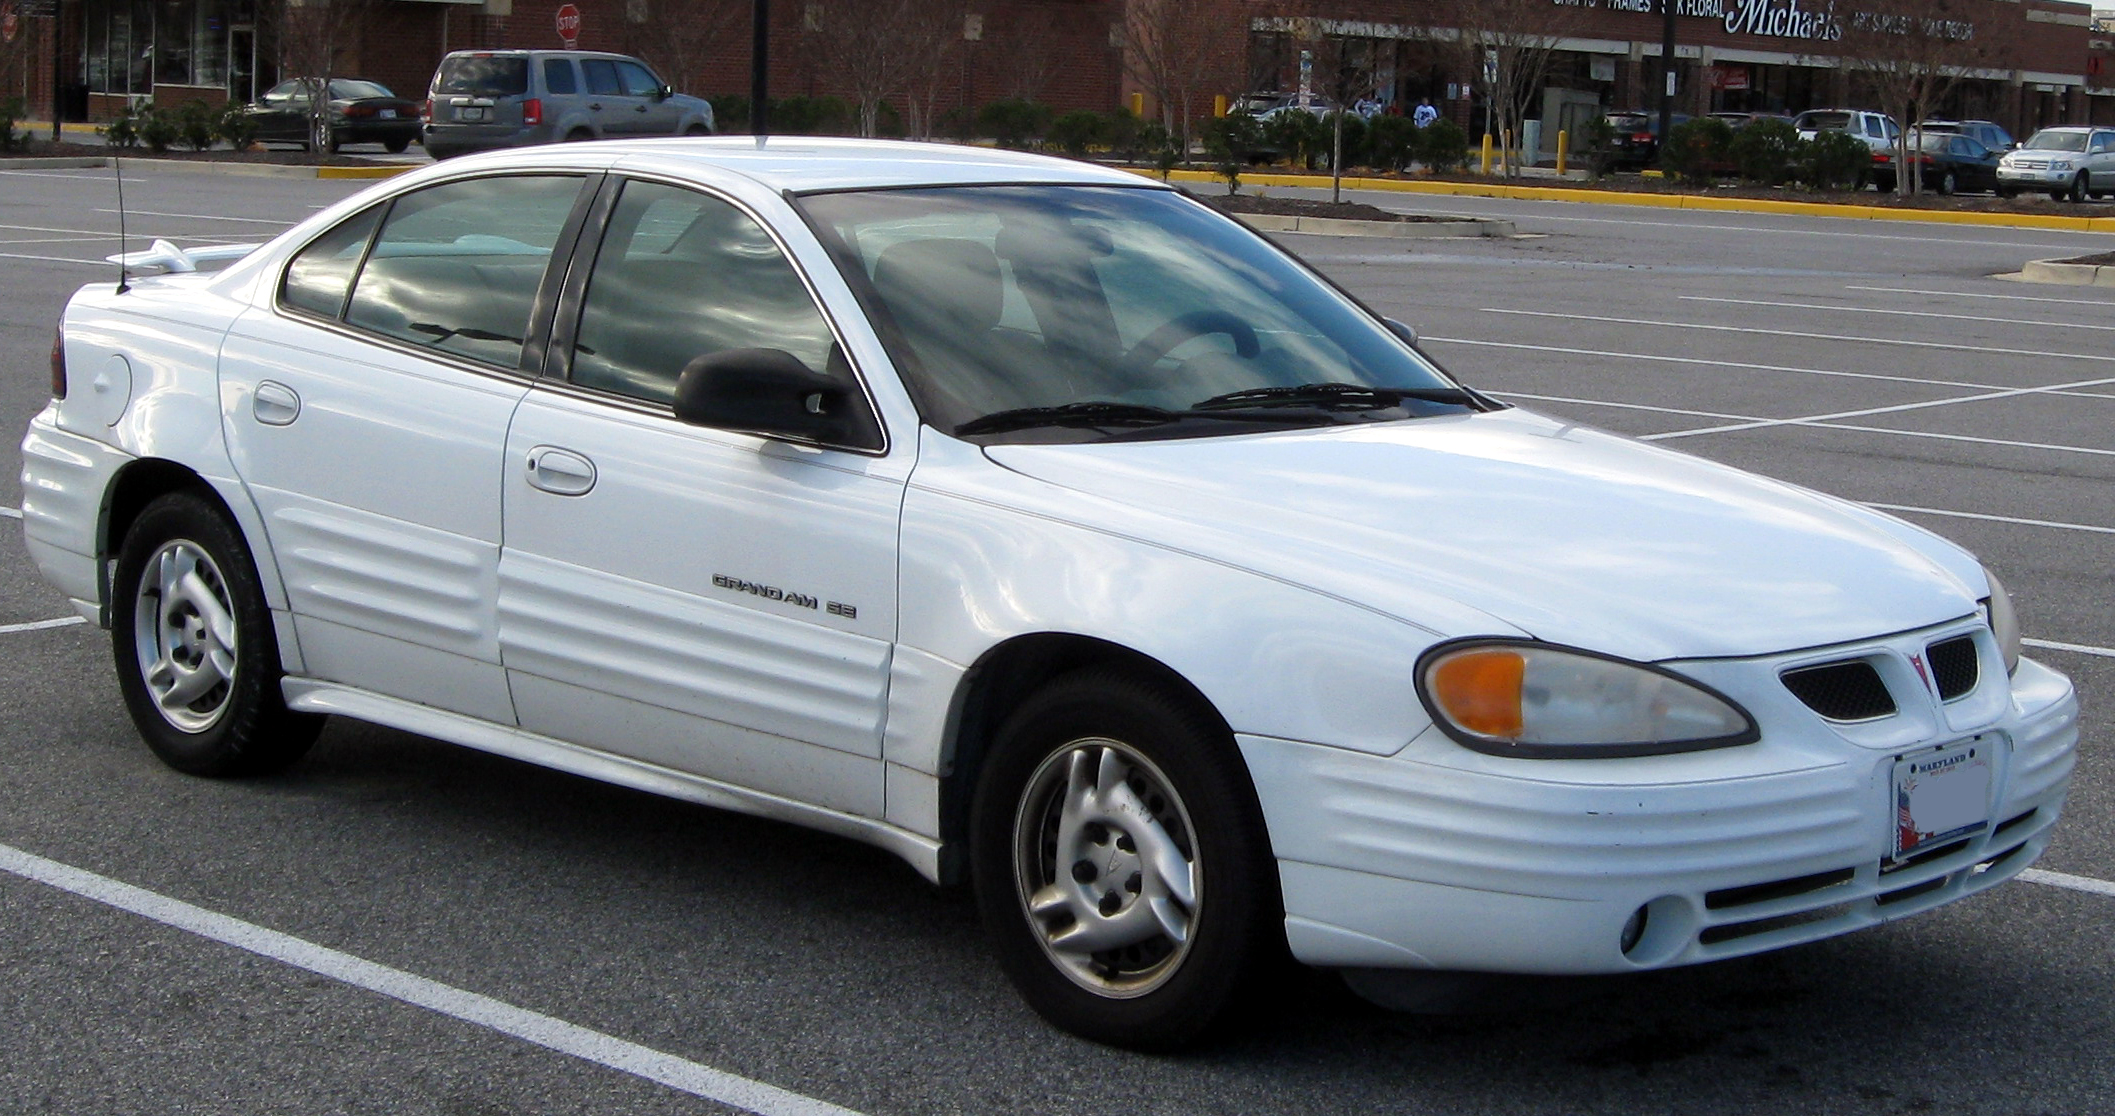 Pontiac Grand Am #3